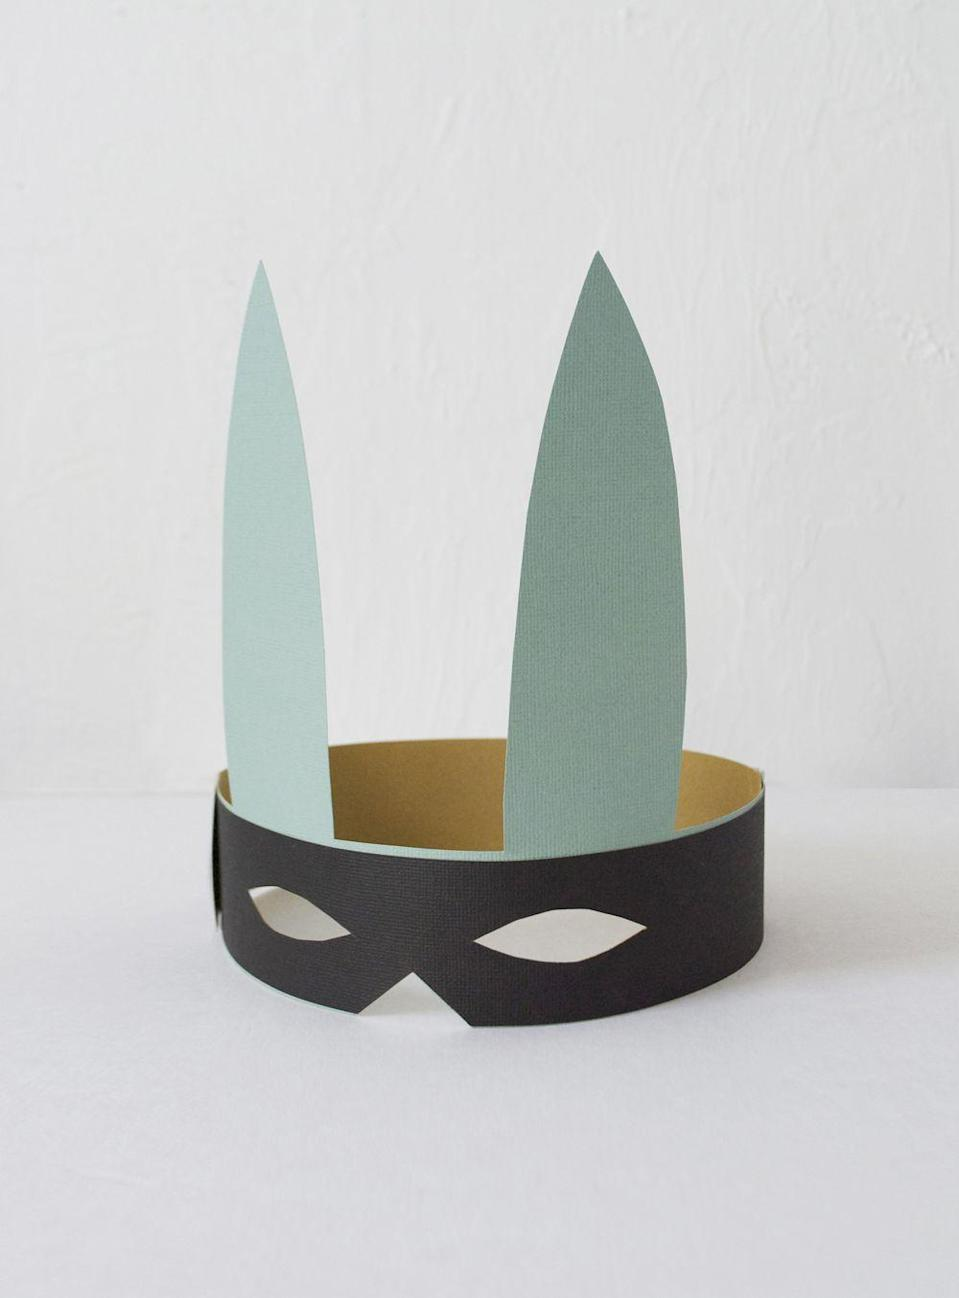 """<p>If your kid is too cool to be a regular rabbit, then this bandit bunny mask is just the accessory they need. </p><p><strong><em>Get the tutorial at <a href=""""http://mermagblog.com/make-a-bandit-bunny-mask-for-easter/"""" rel=""""nofollow noopener"""" target=""""_blank"""" data-ylk=""""slk:Mer Mag"""" class=""""link rapid-noclick-resp"""">Mer Mag</a>. </em></strong></p>"""